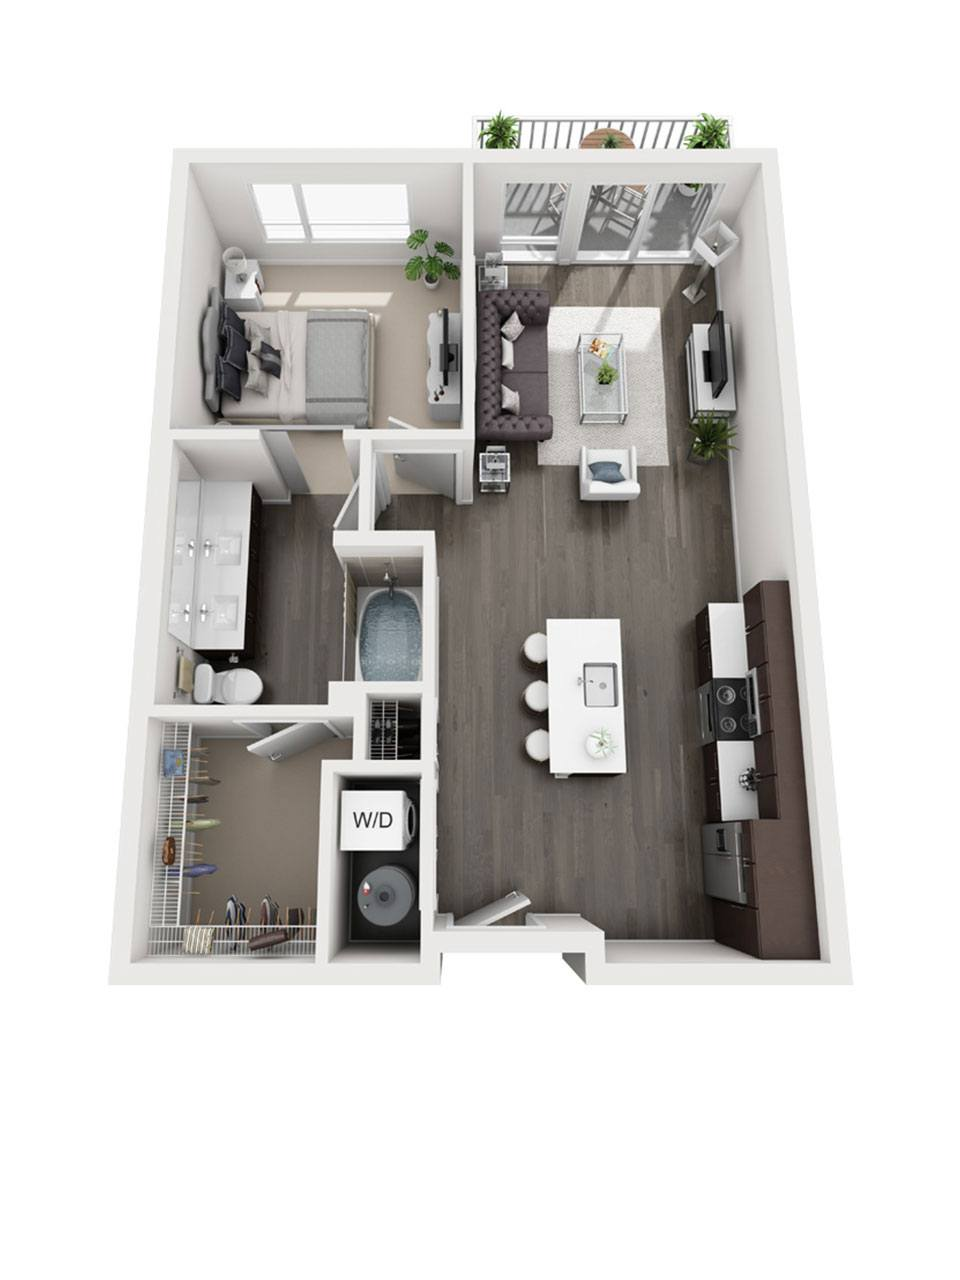 Plan 1 bedroom – A1 | 1 Bath